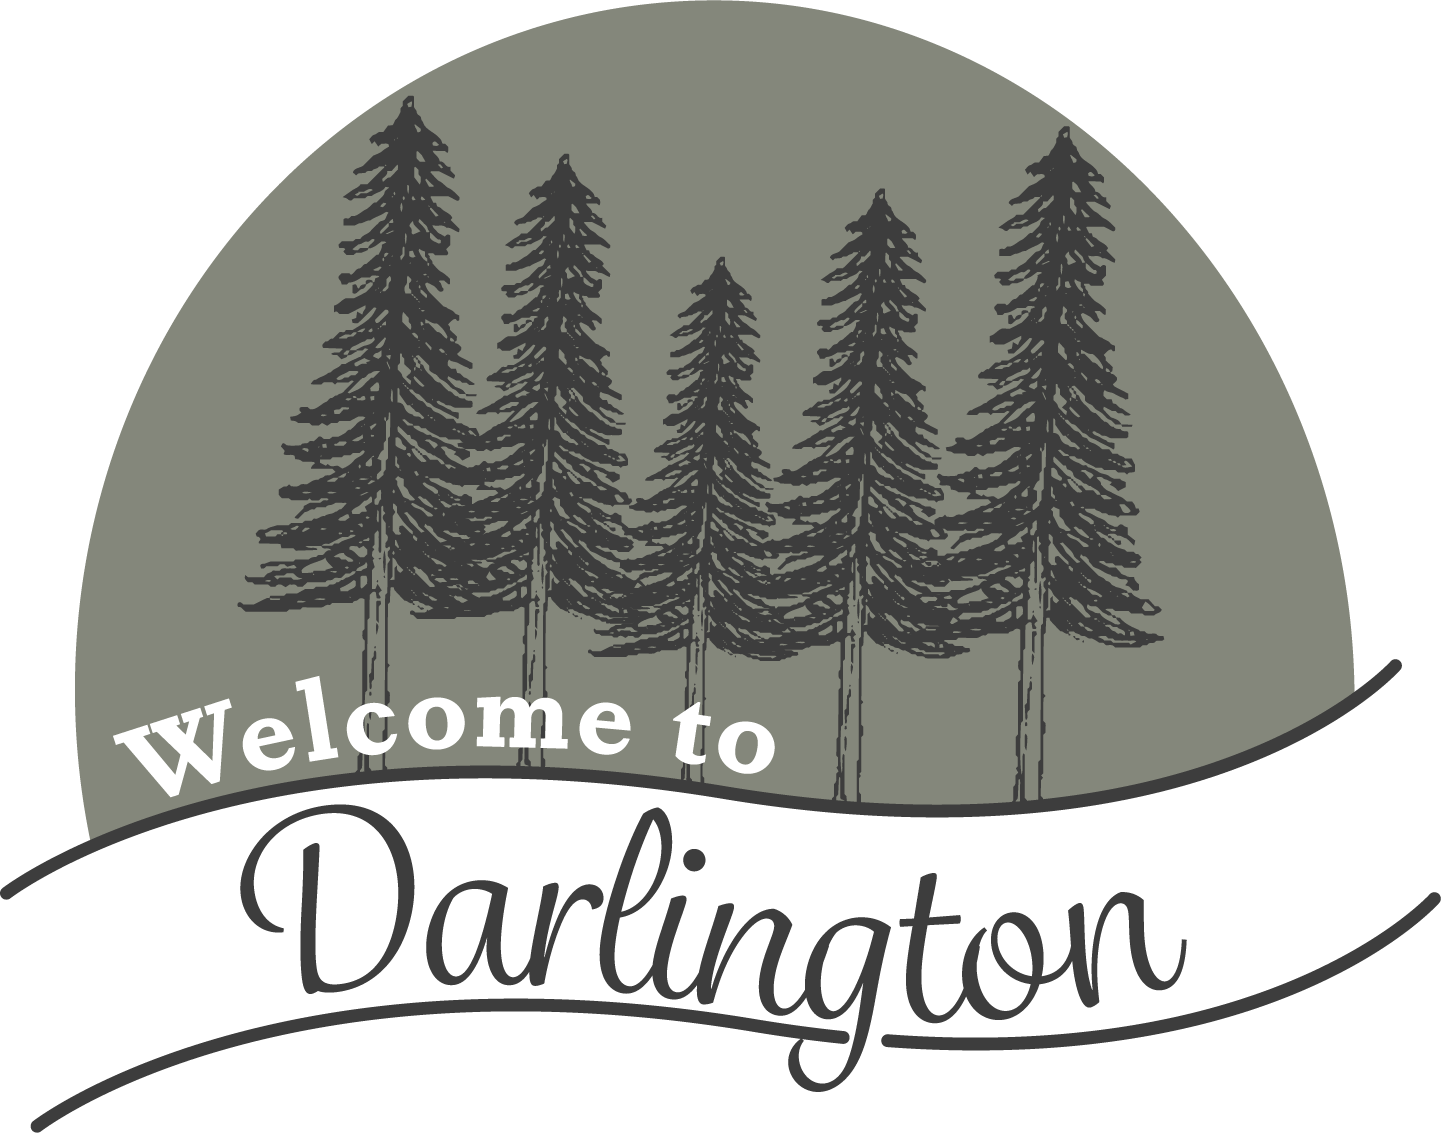 City of Darlington!